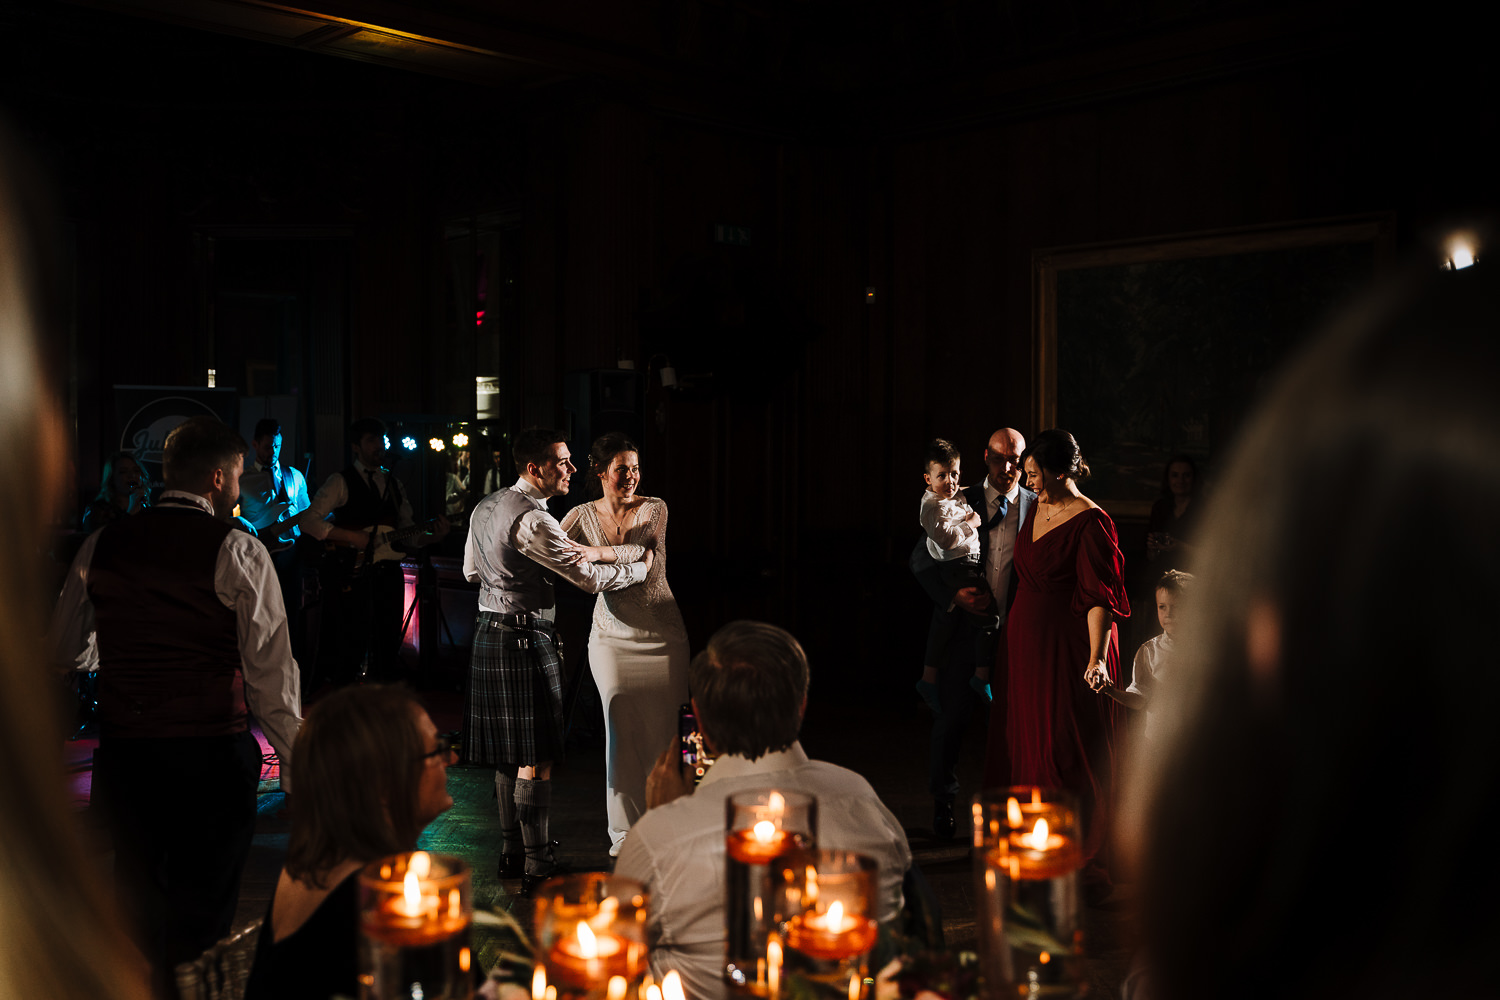 First dance at Thornton Manor shooting from the crowd